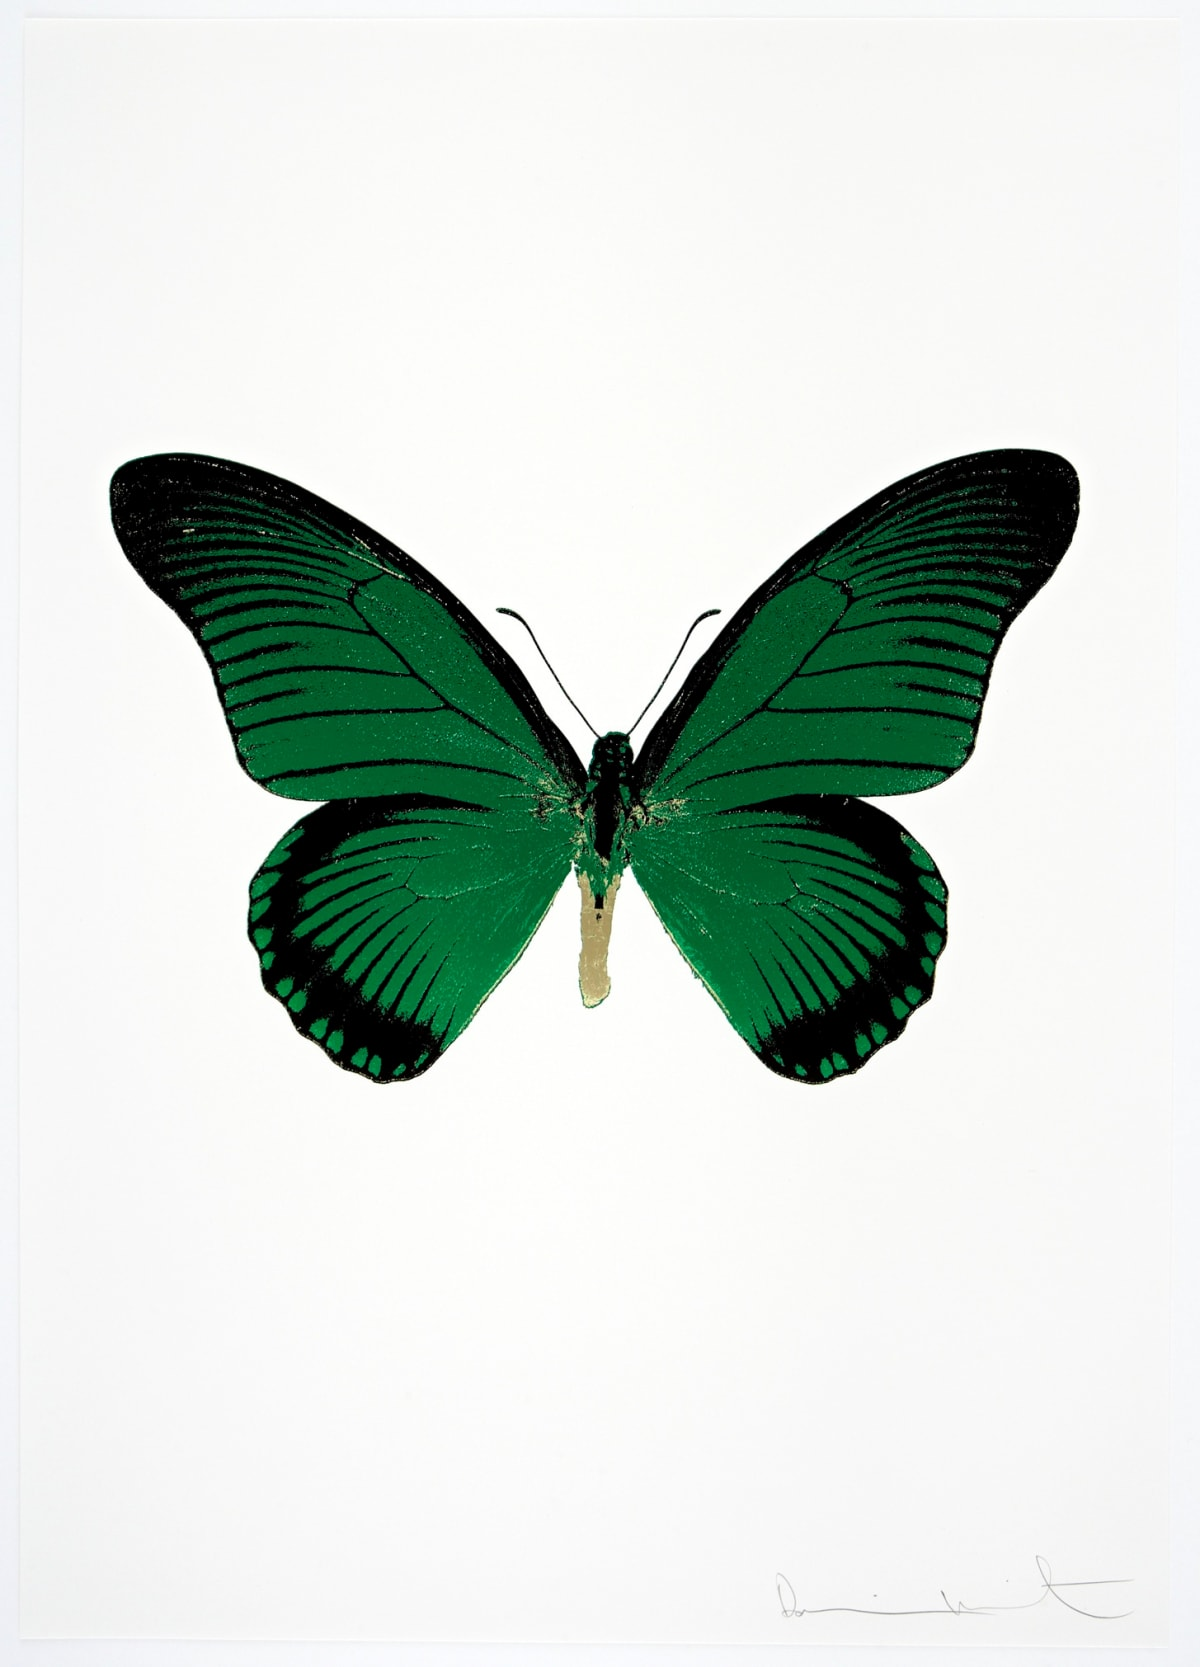 Damien Hirst The Souls IV - Emerald Green/Raven Black/Cool Gold, 2010 3 colour foil block on 300gsm Arches 88 archival paper. Signed and numbered. Published by Paul Stolper and Other Criteria 72 x 51cm OC8049 / 1418-72 Edition of 15